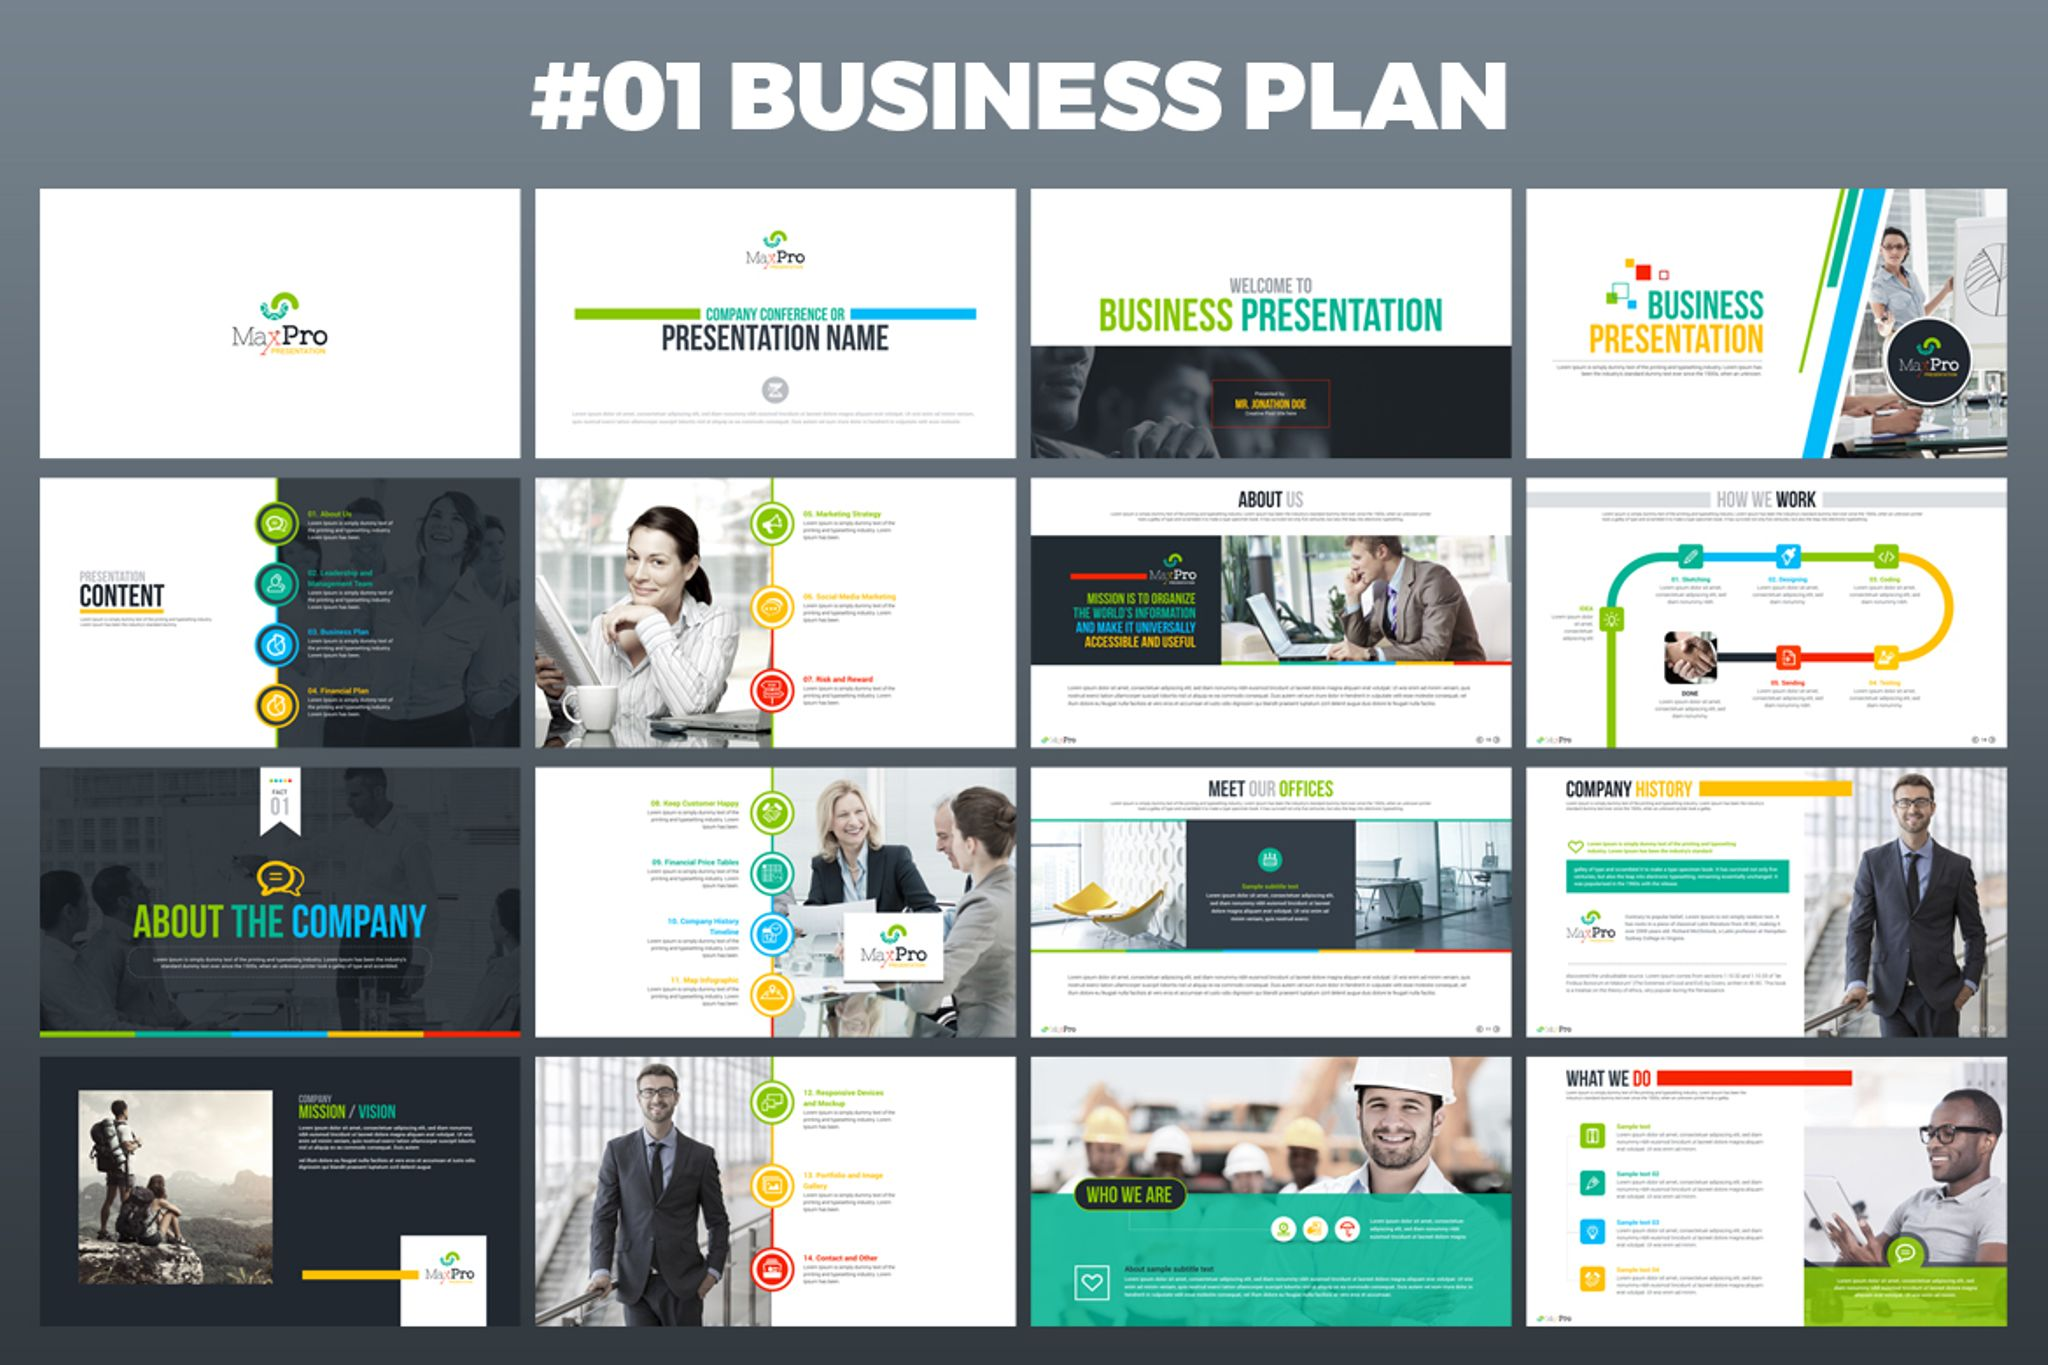 Maxpro business plan powerpoint template 66751 maxpro business plan powerpoint template big screenshot accmission Images